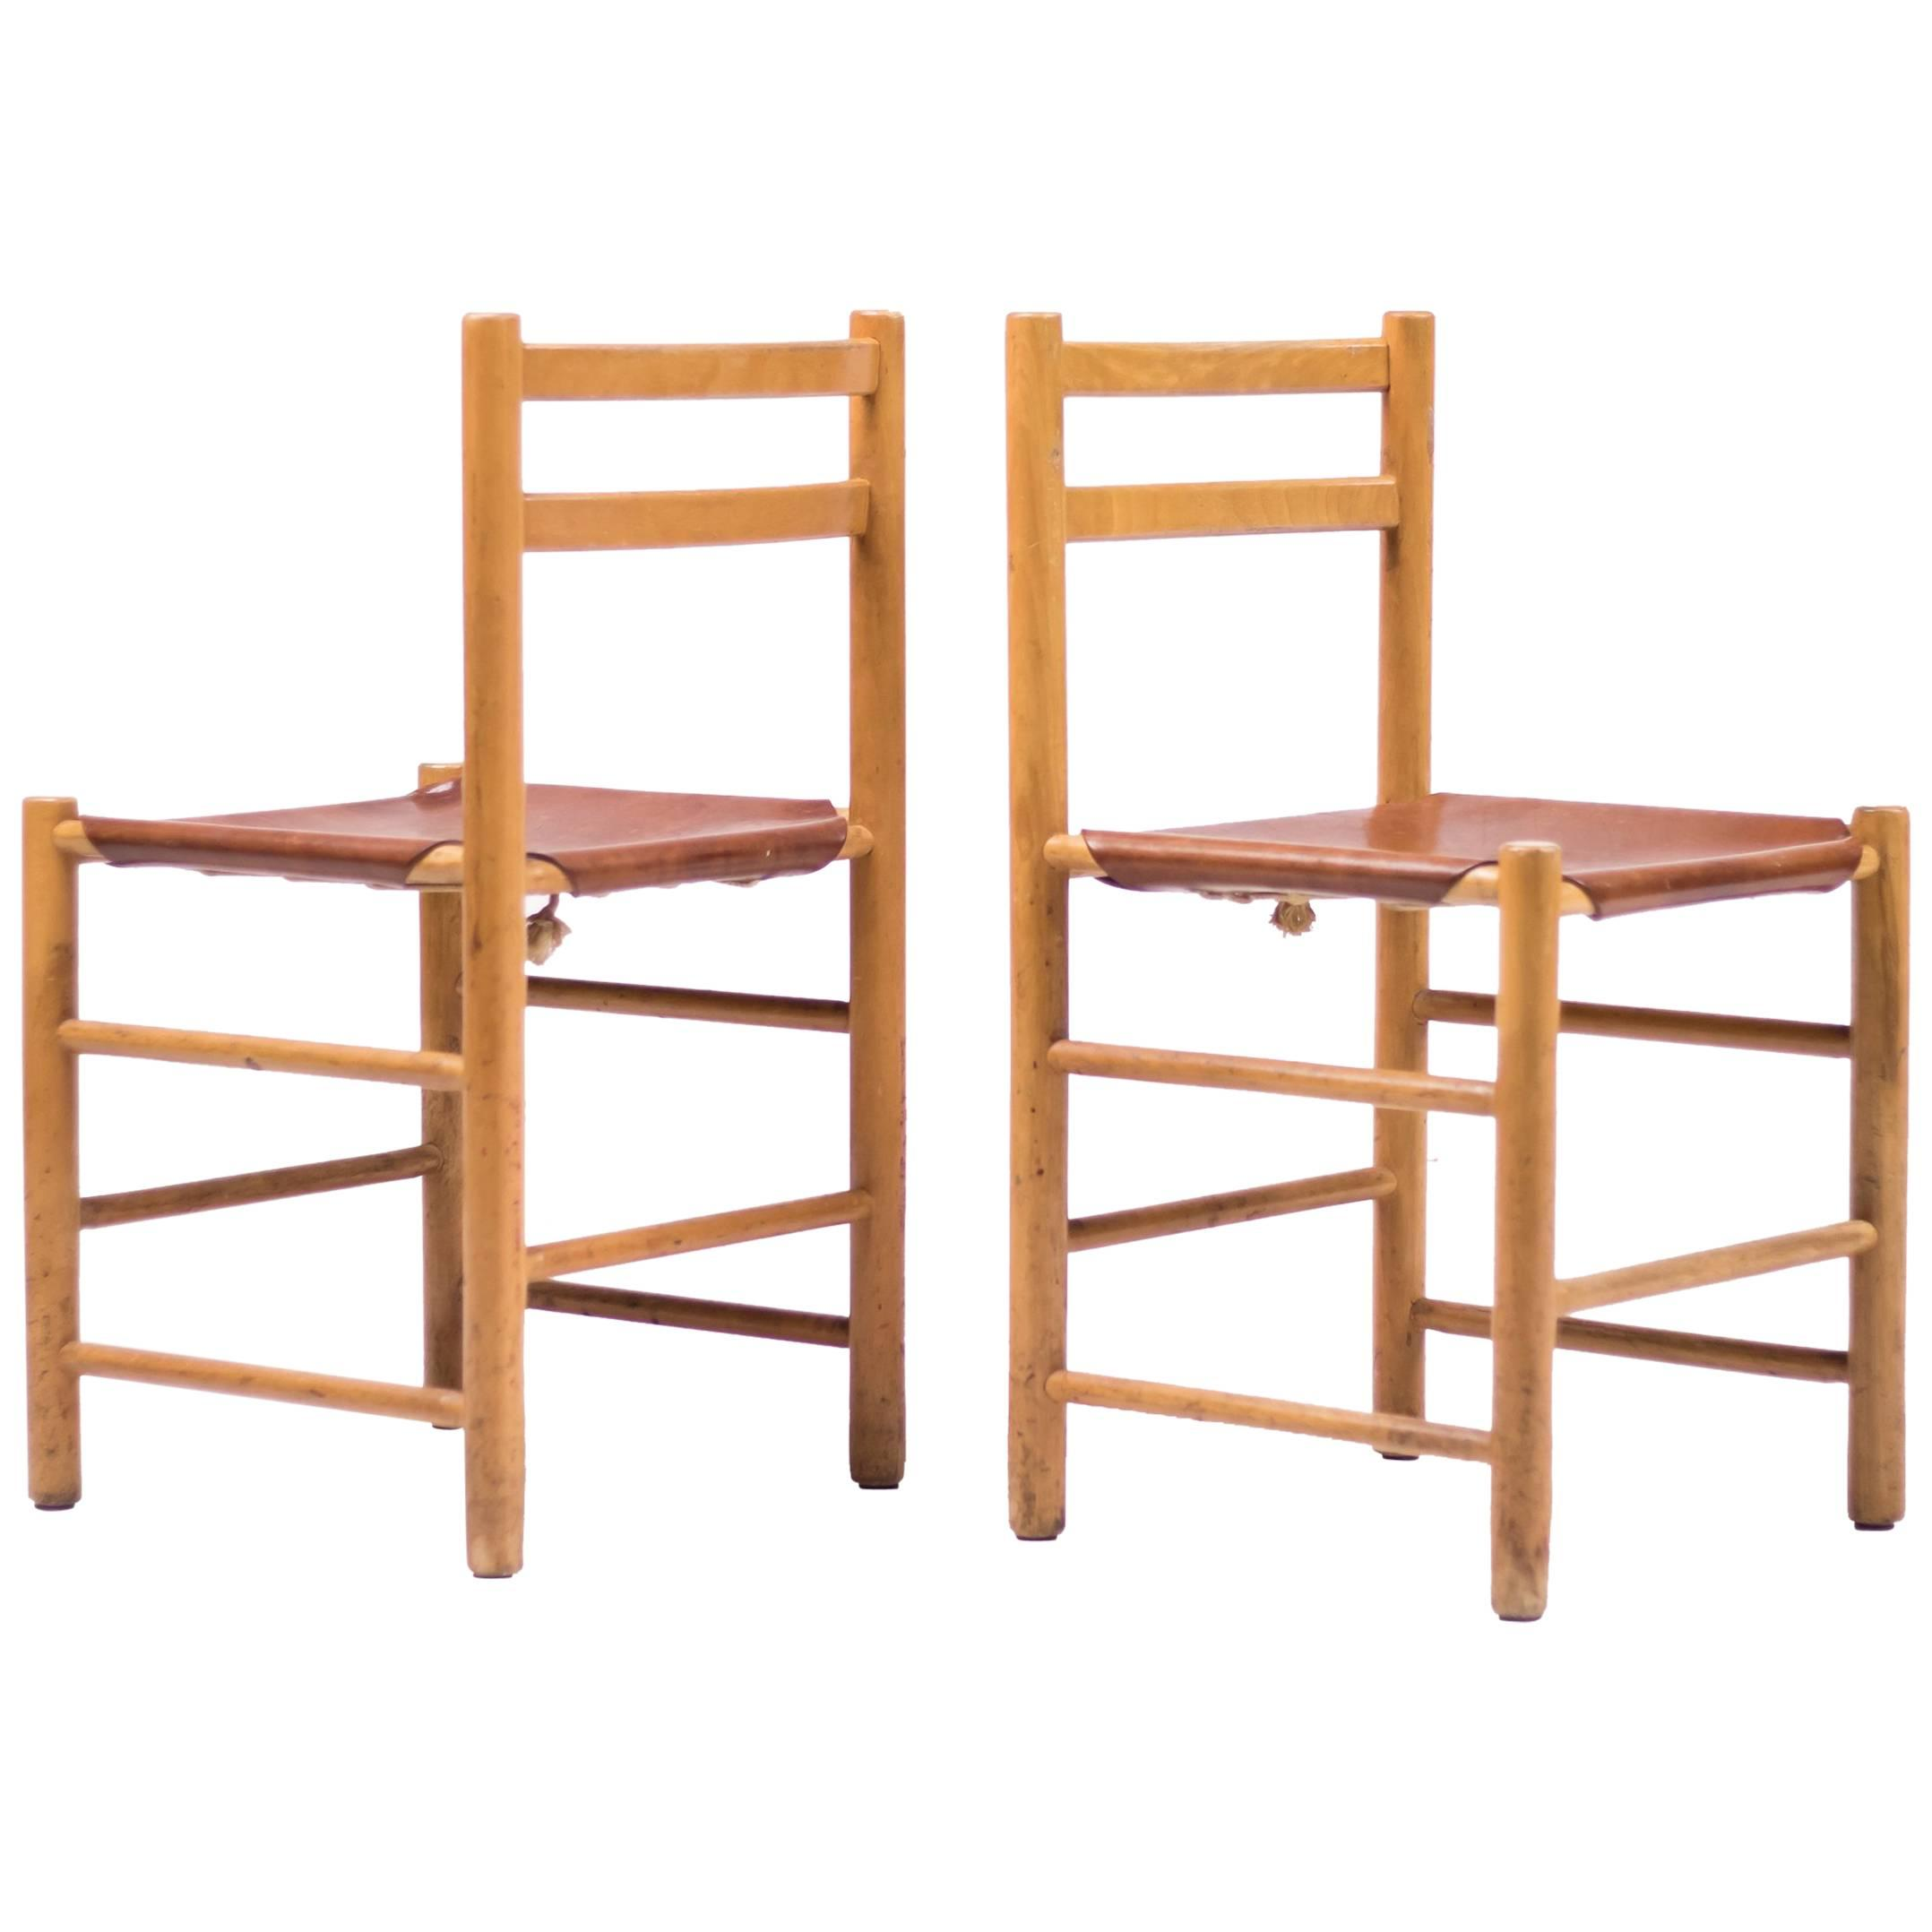 Pair Of Minimalist Chairs In Maple And Leather